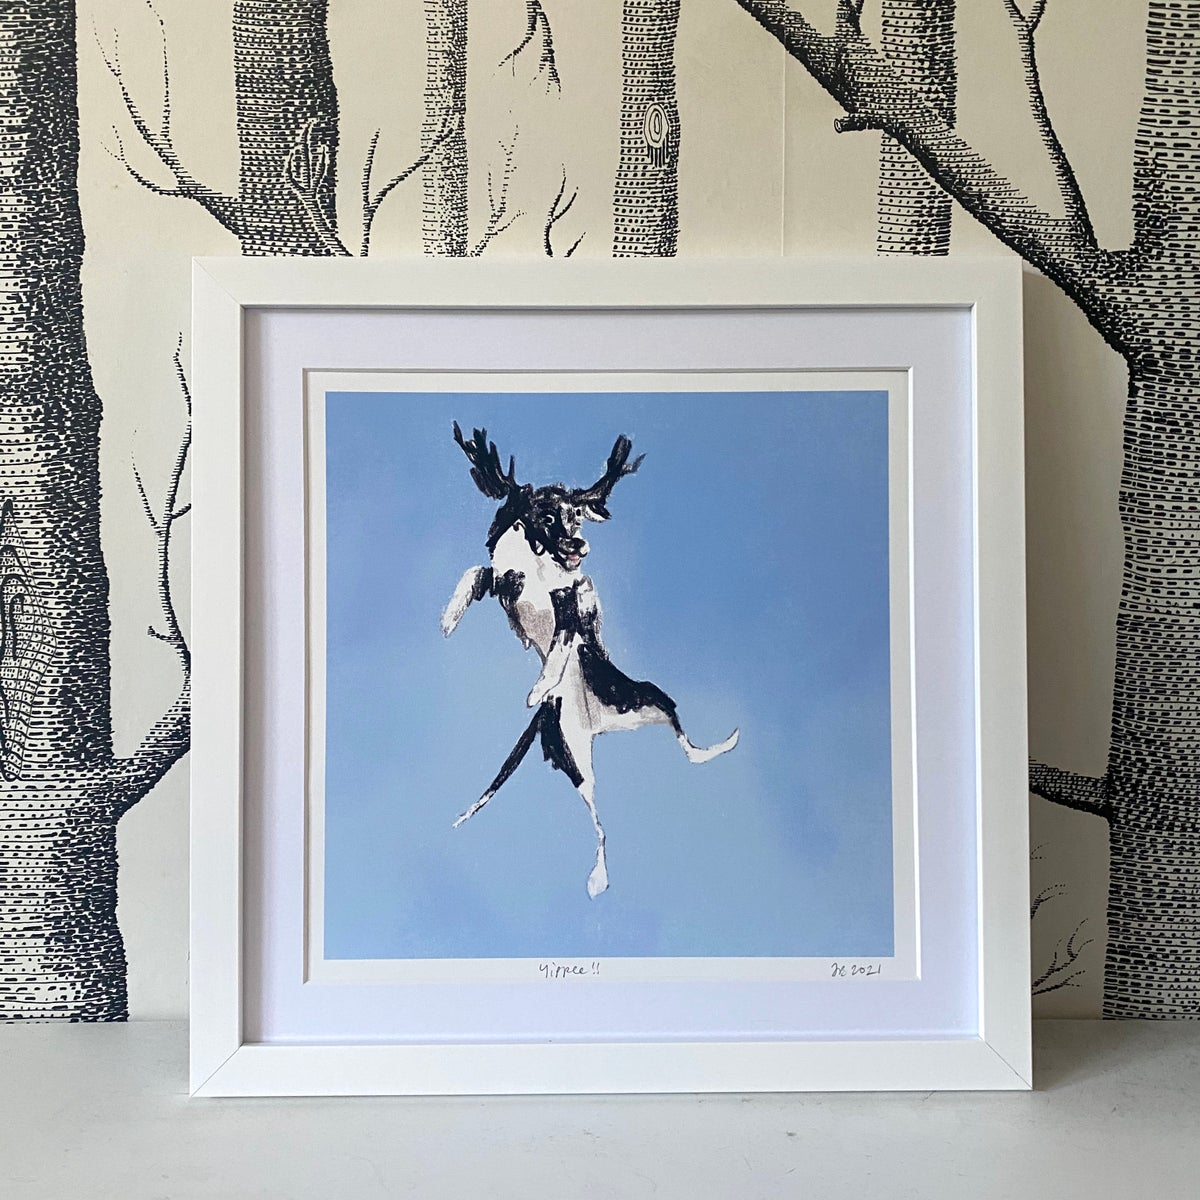 Image of 'Yippee!!' Archive Quality Print